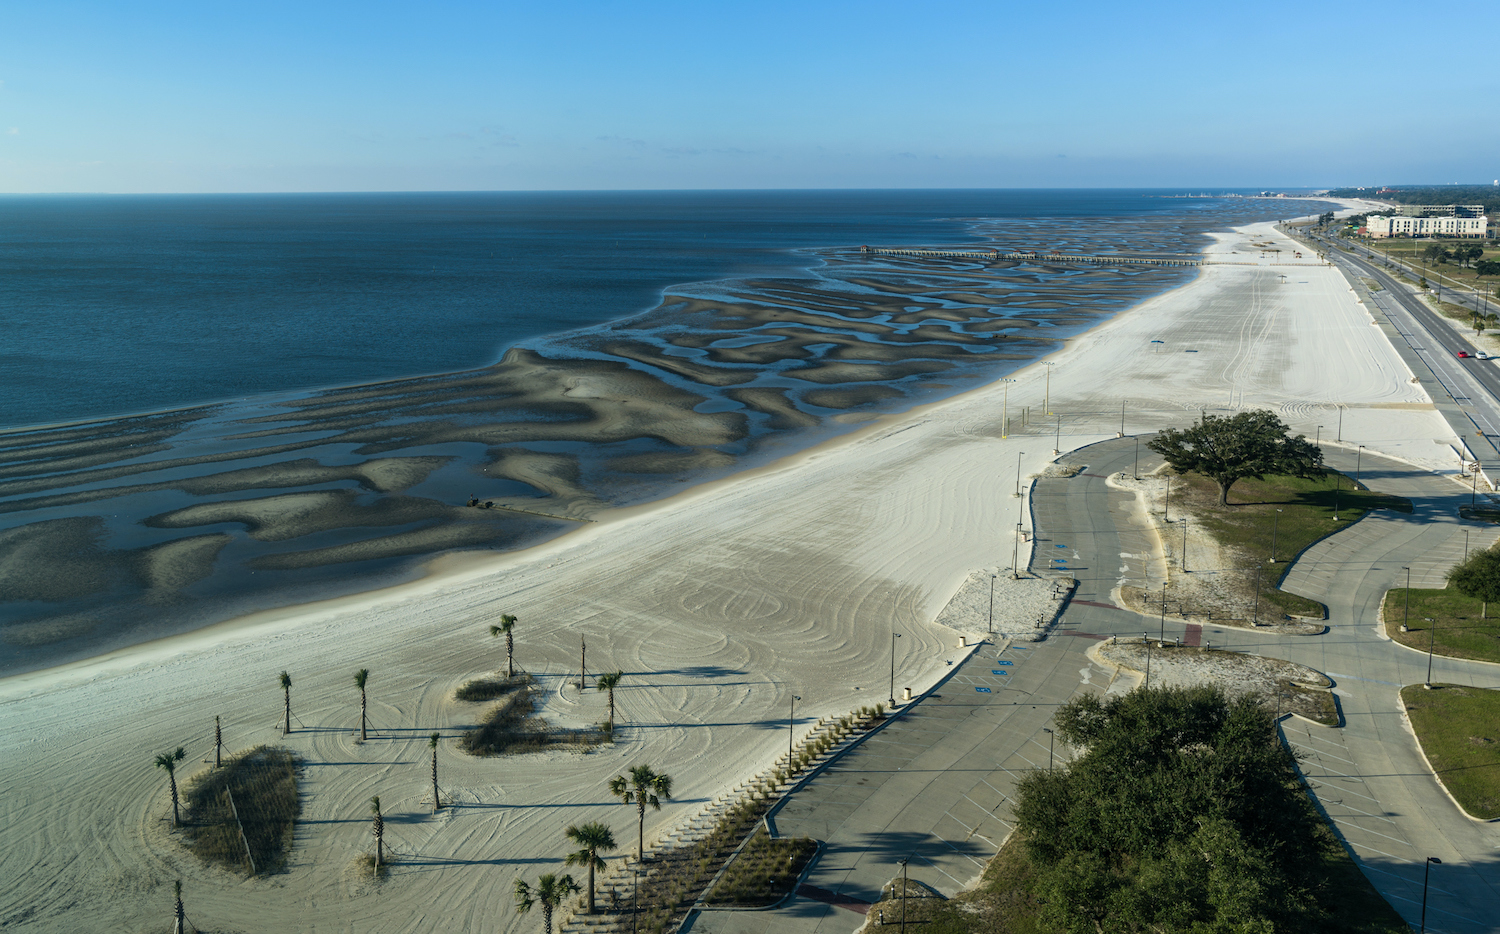 A sand beach in the Gulf of Mexico, in Gulfport, Mississippi - USA